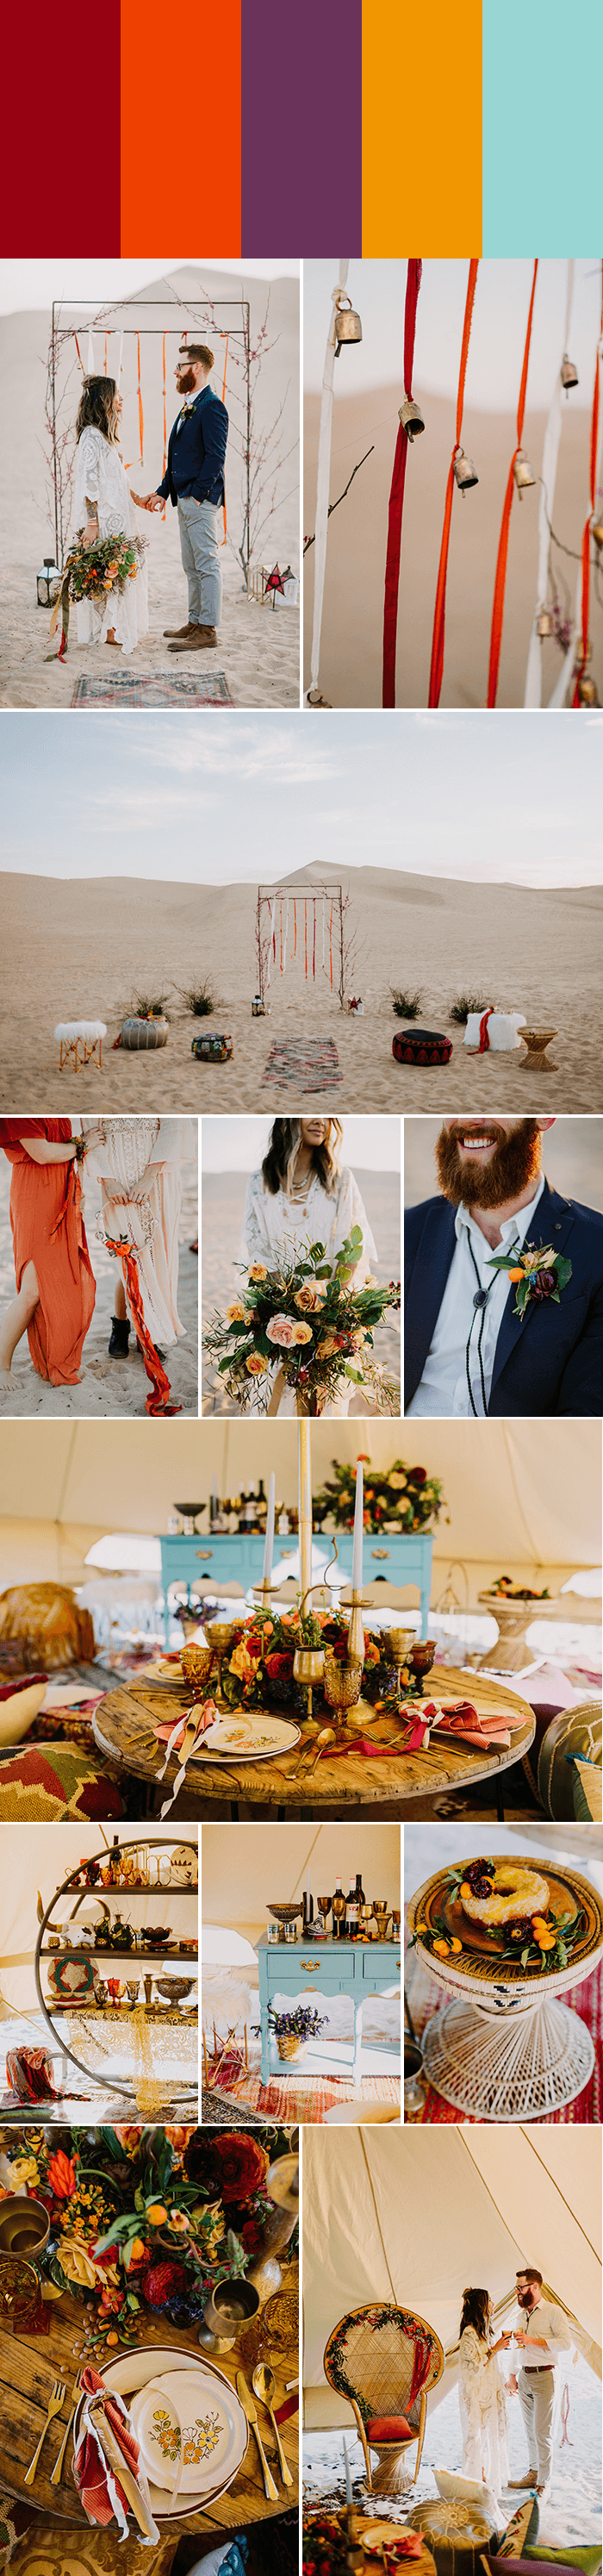 Bohemian Wedding Color Palettes That Really Set The Tone Junebug